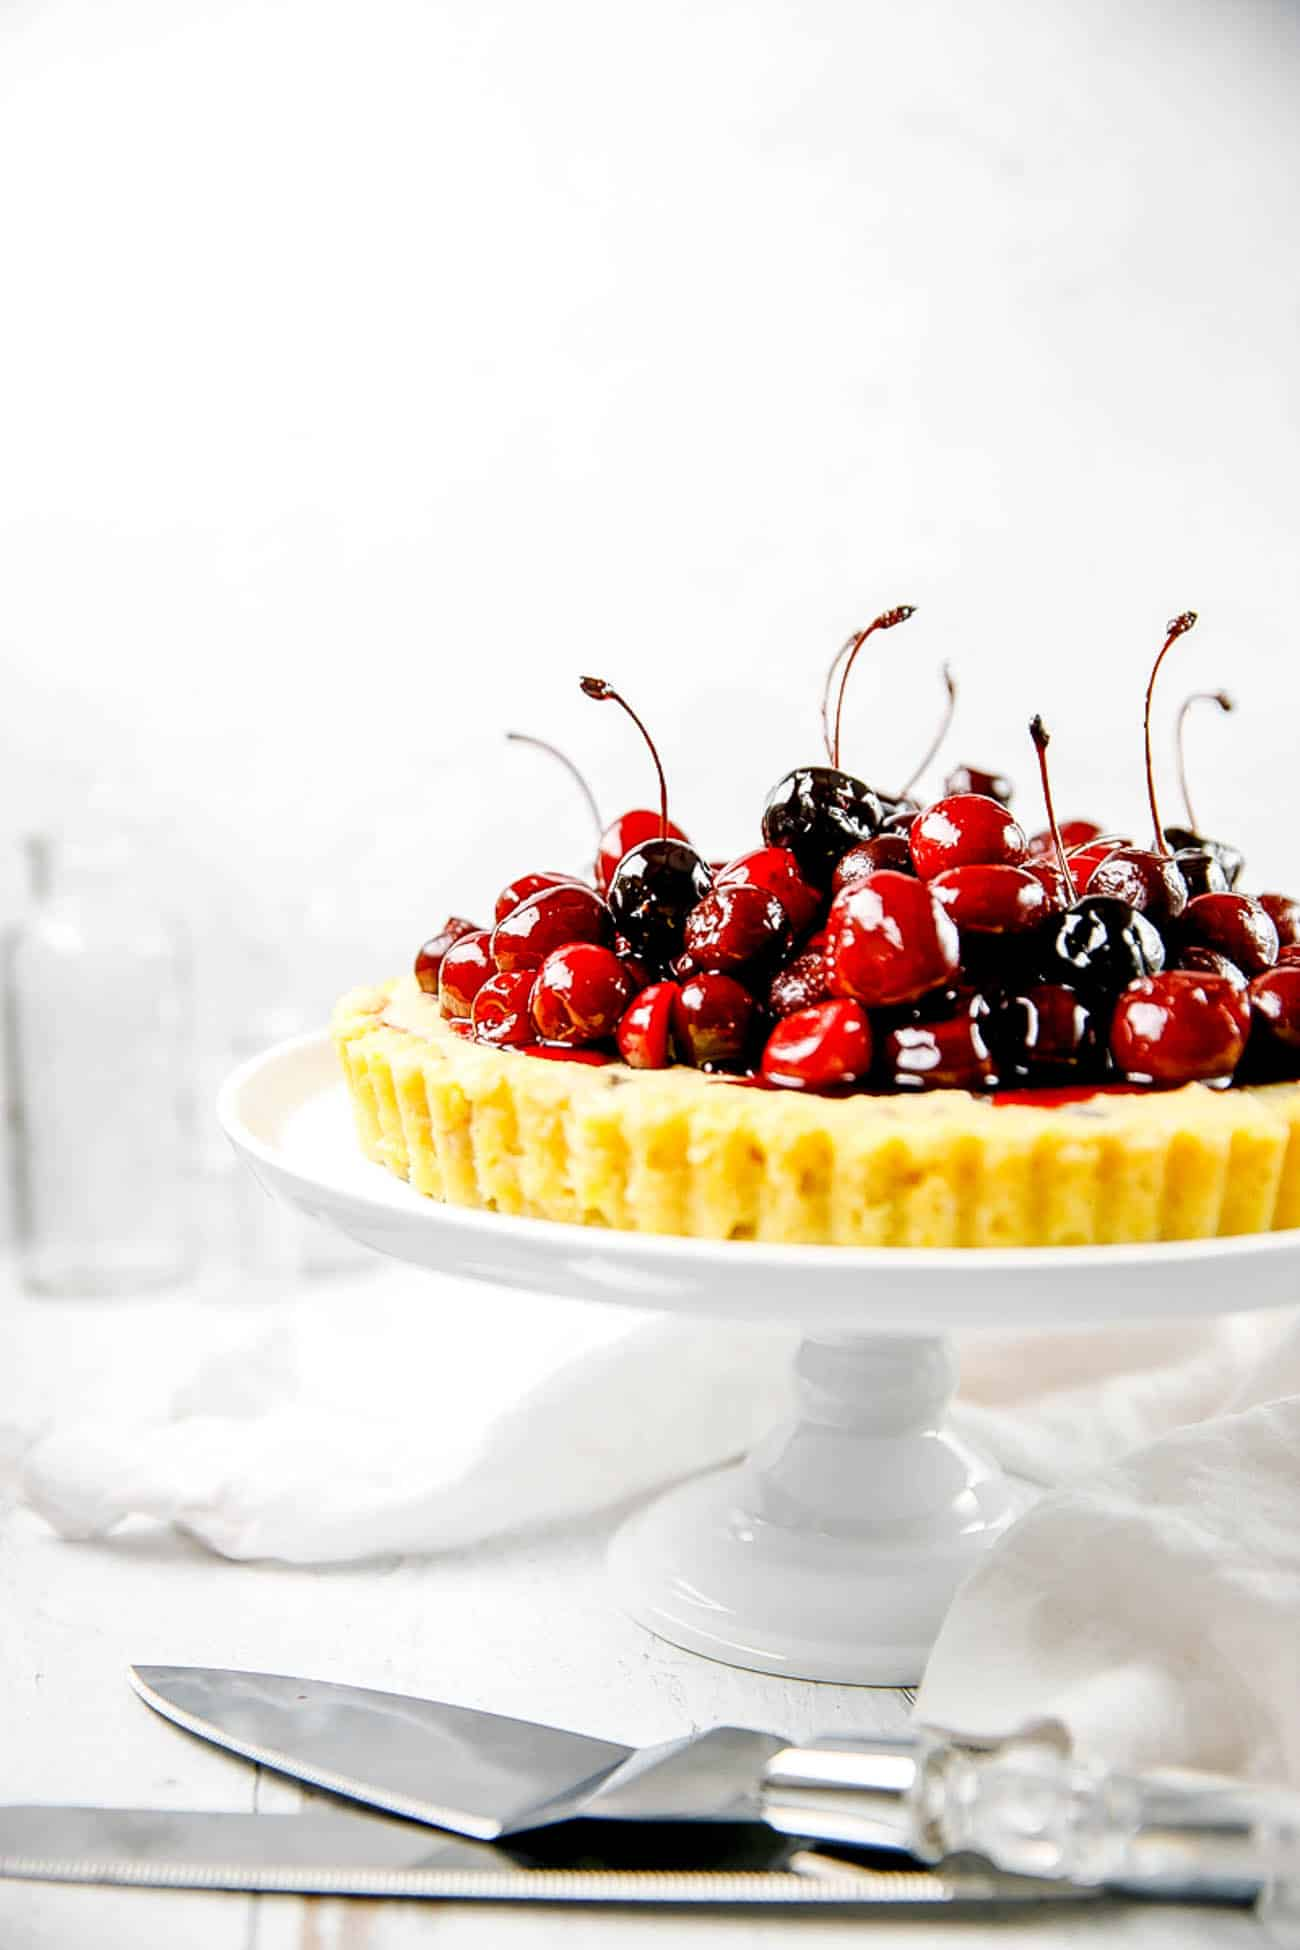 dark chocolate and ricotta pie, finished with fresh cherries, on a cake stand